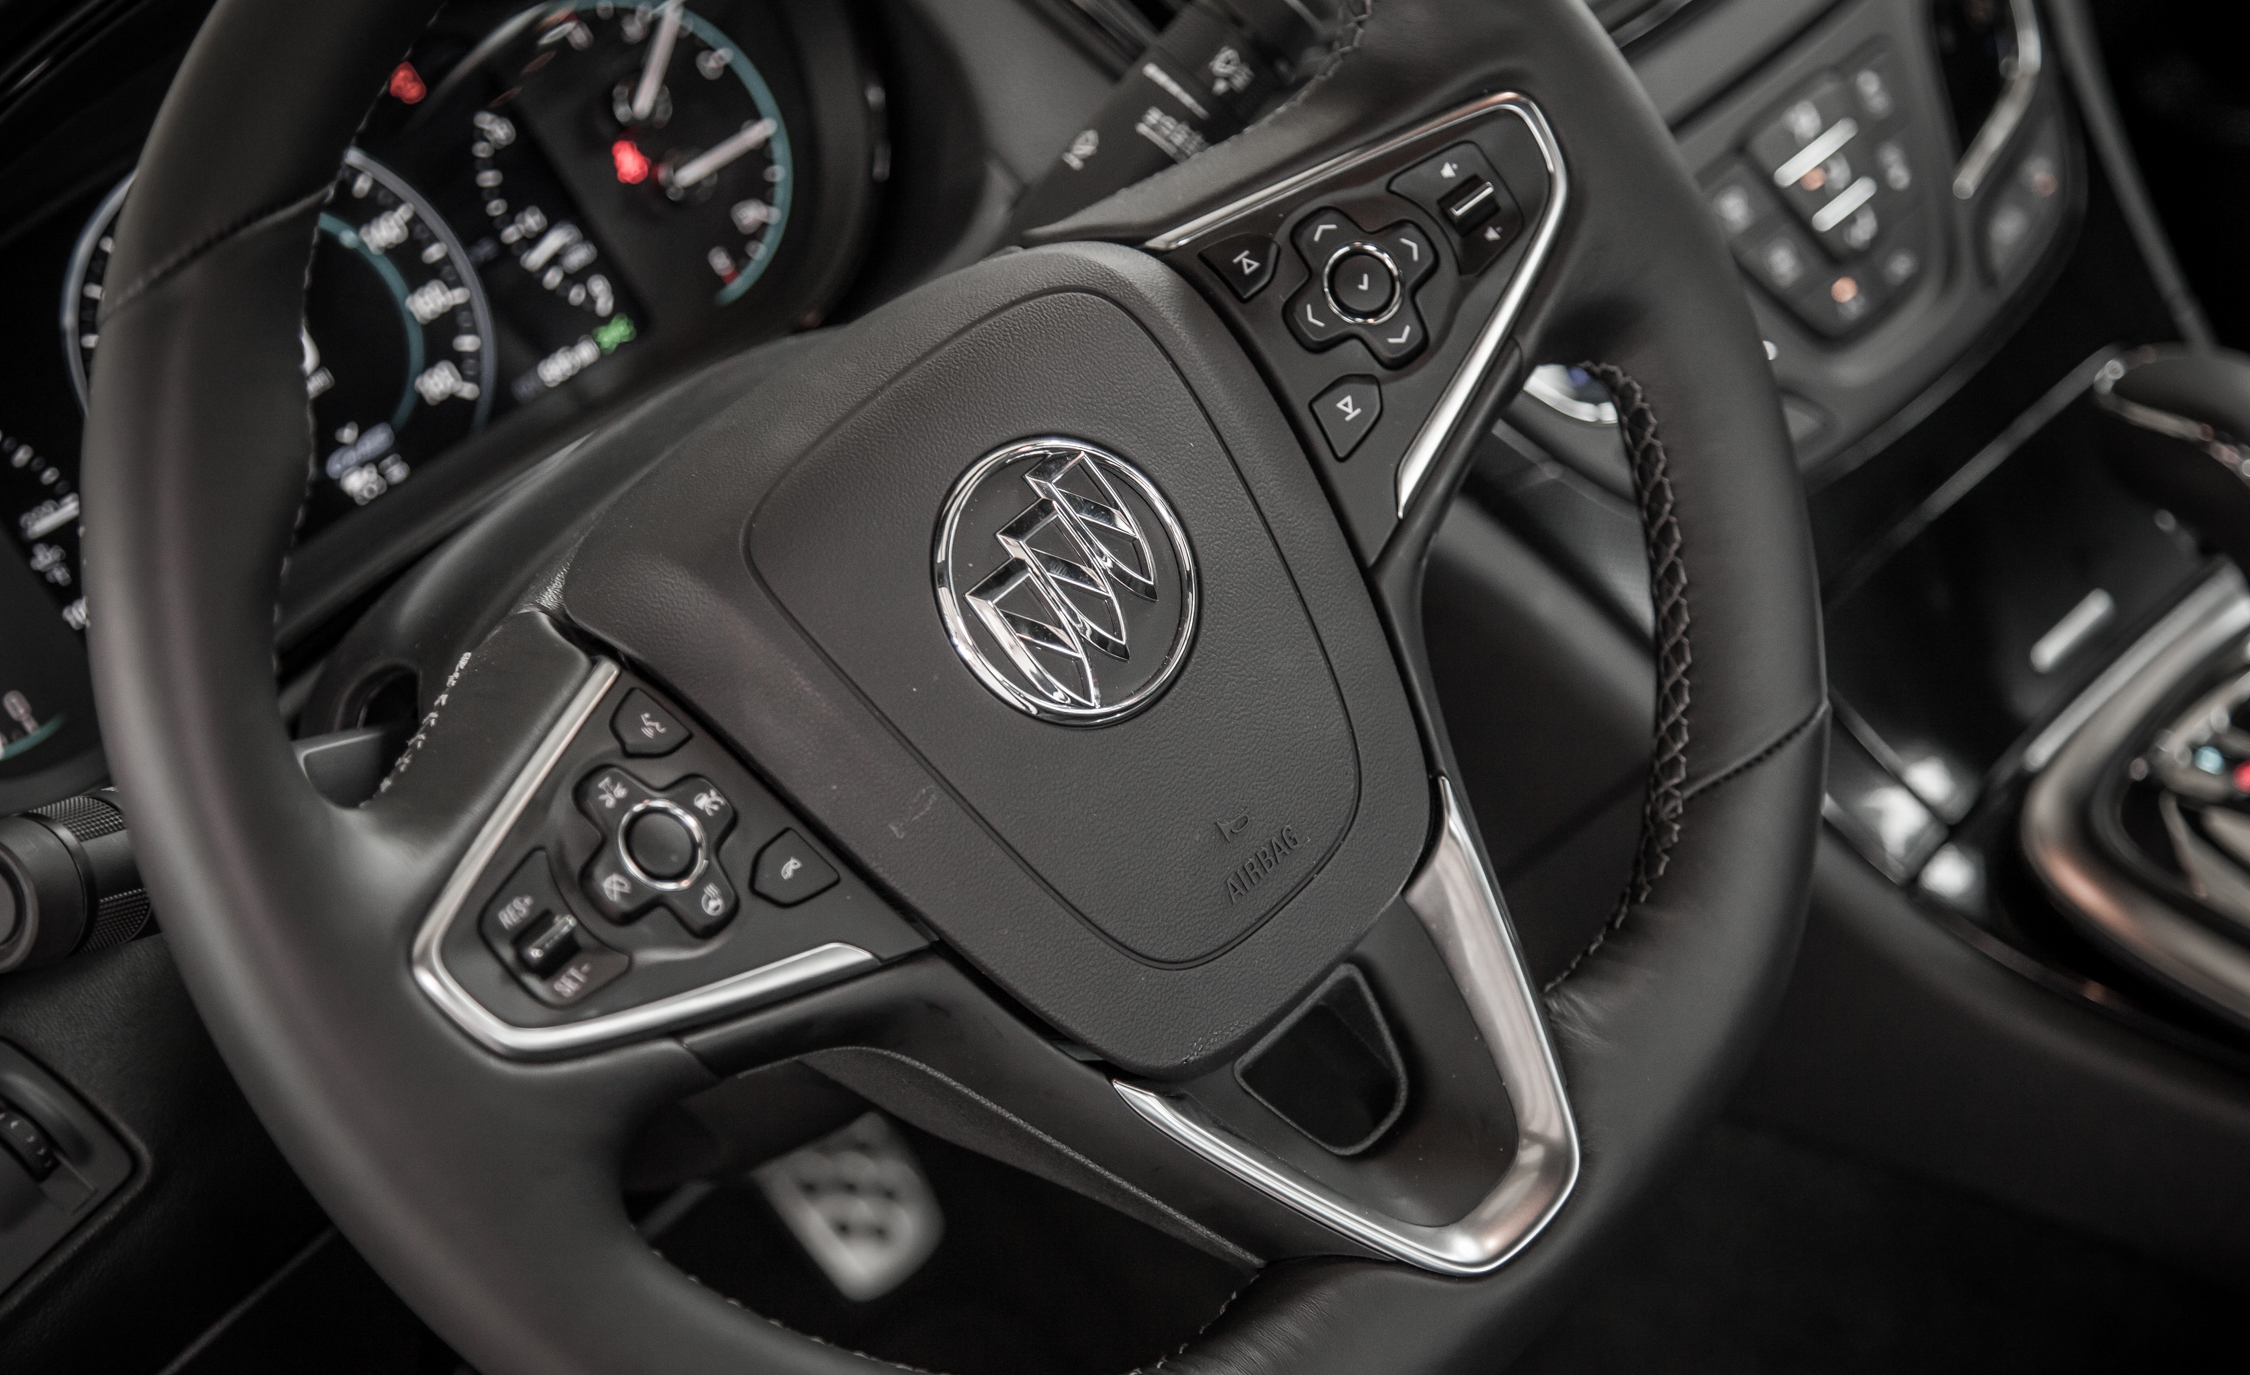 2014 Buick Regal GS Interior (Photo 8 of 30)